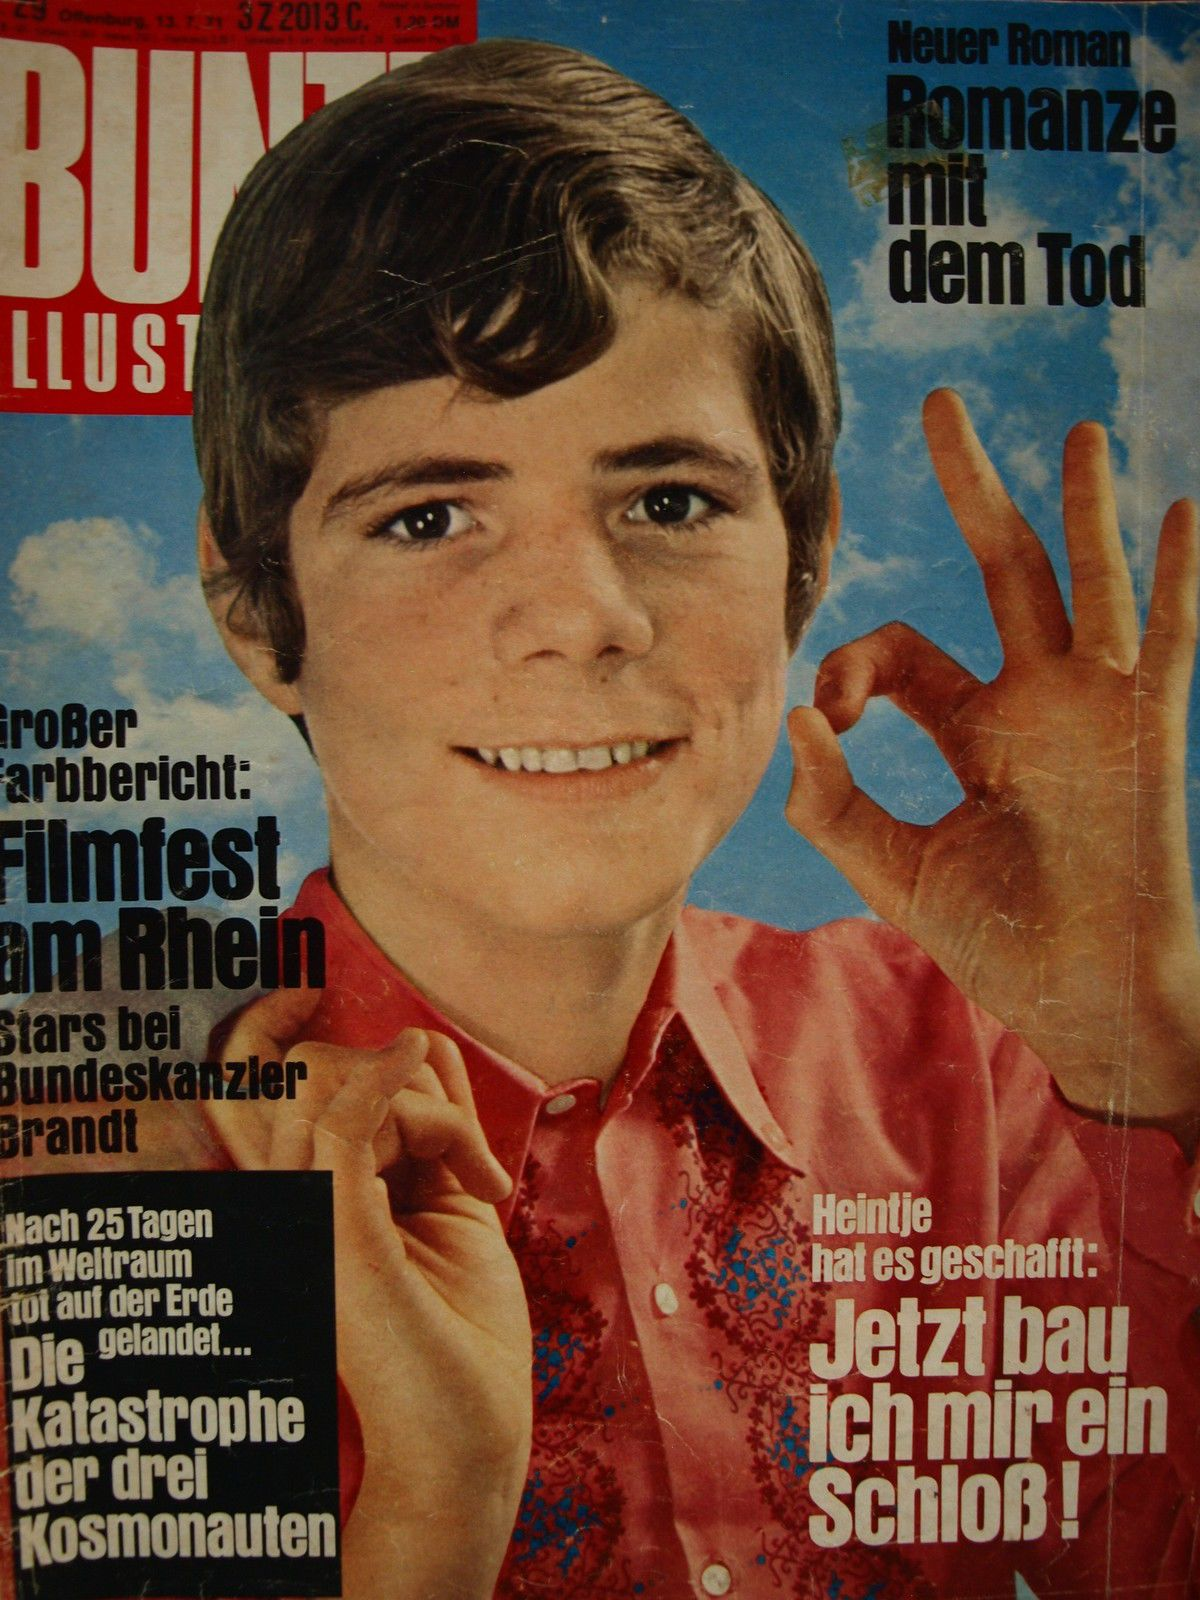 Bunte Nr 29 Von 1971 Heintje Do You Remember Movies Remember